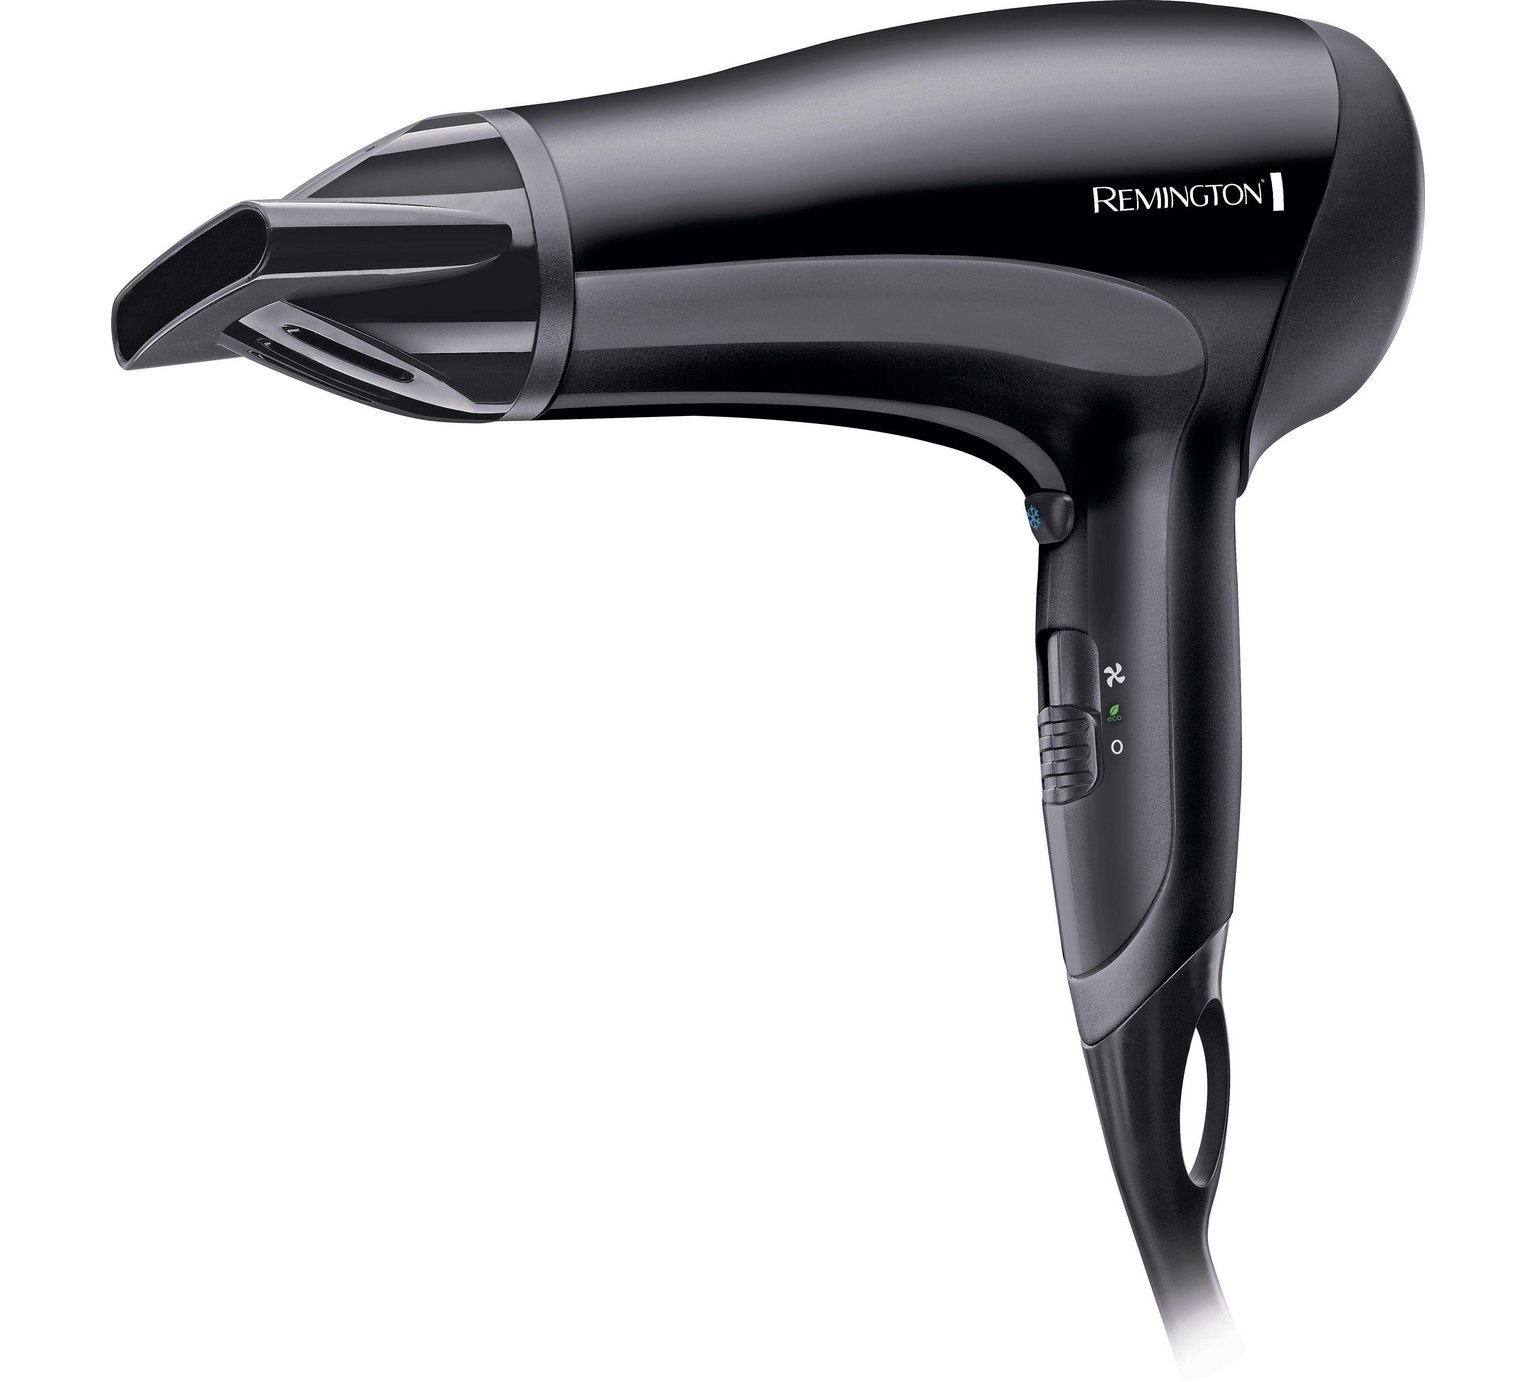 Remington Power Dry Hair Dryer D3010